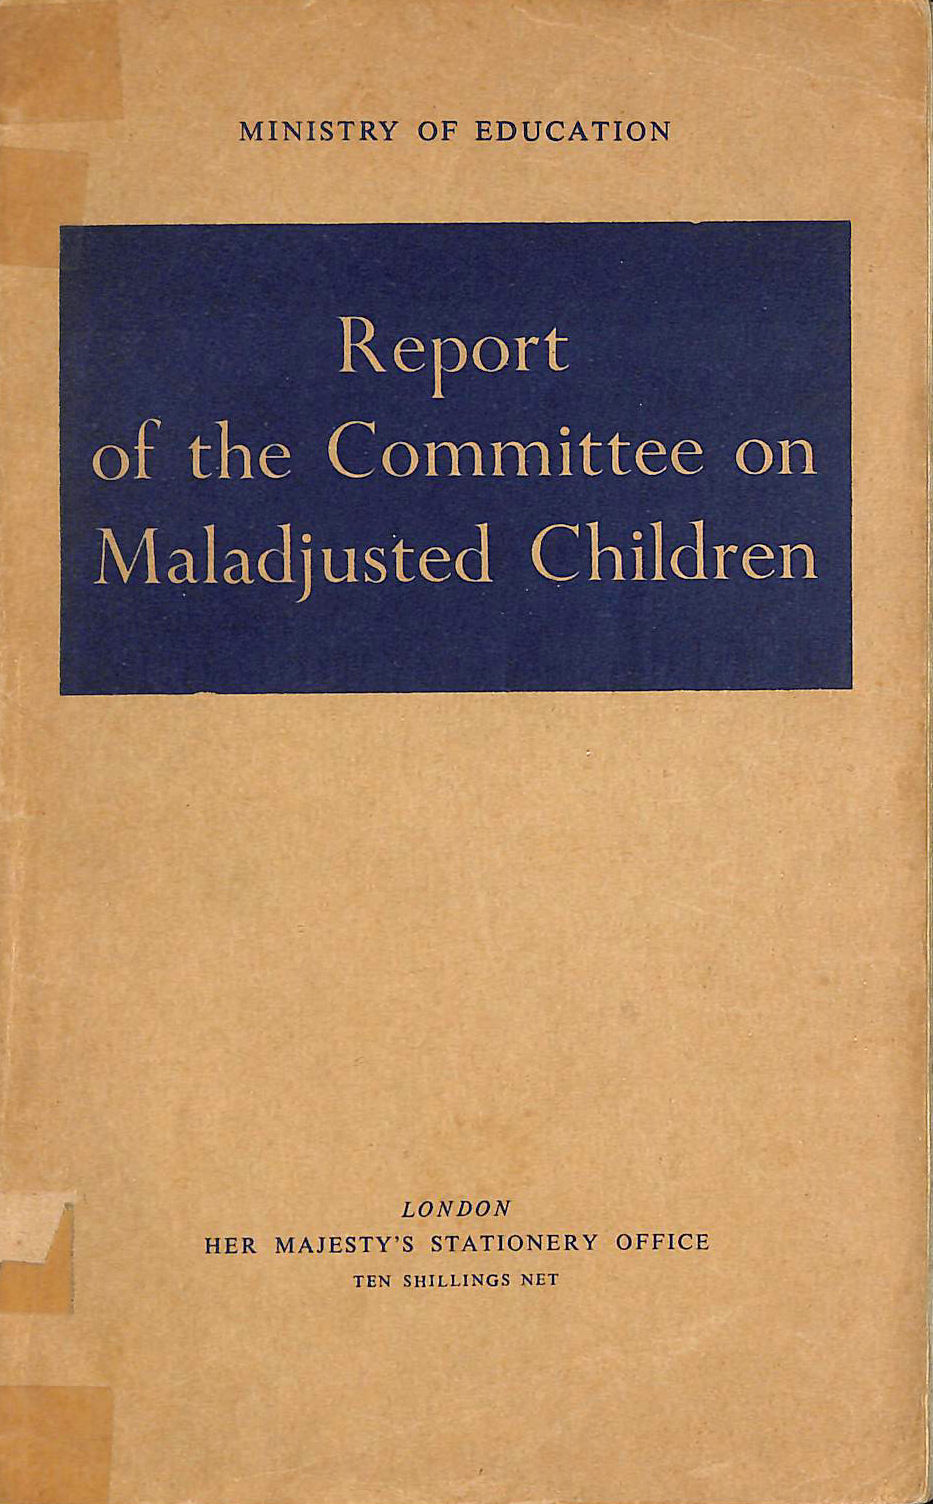 Image for REPORT OF THE COMMITTEE ON MALADJUSTED CHILDREN